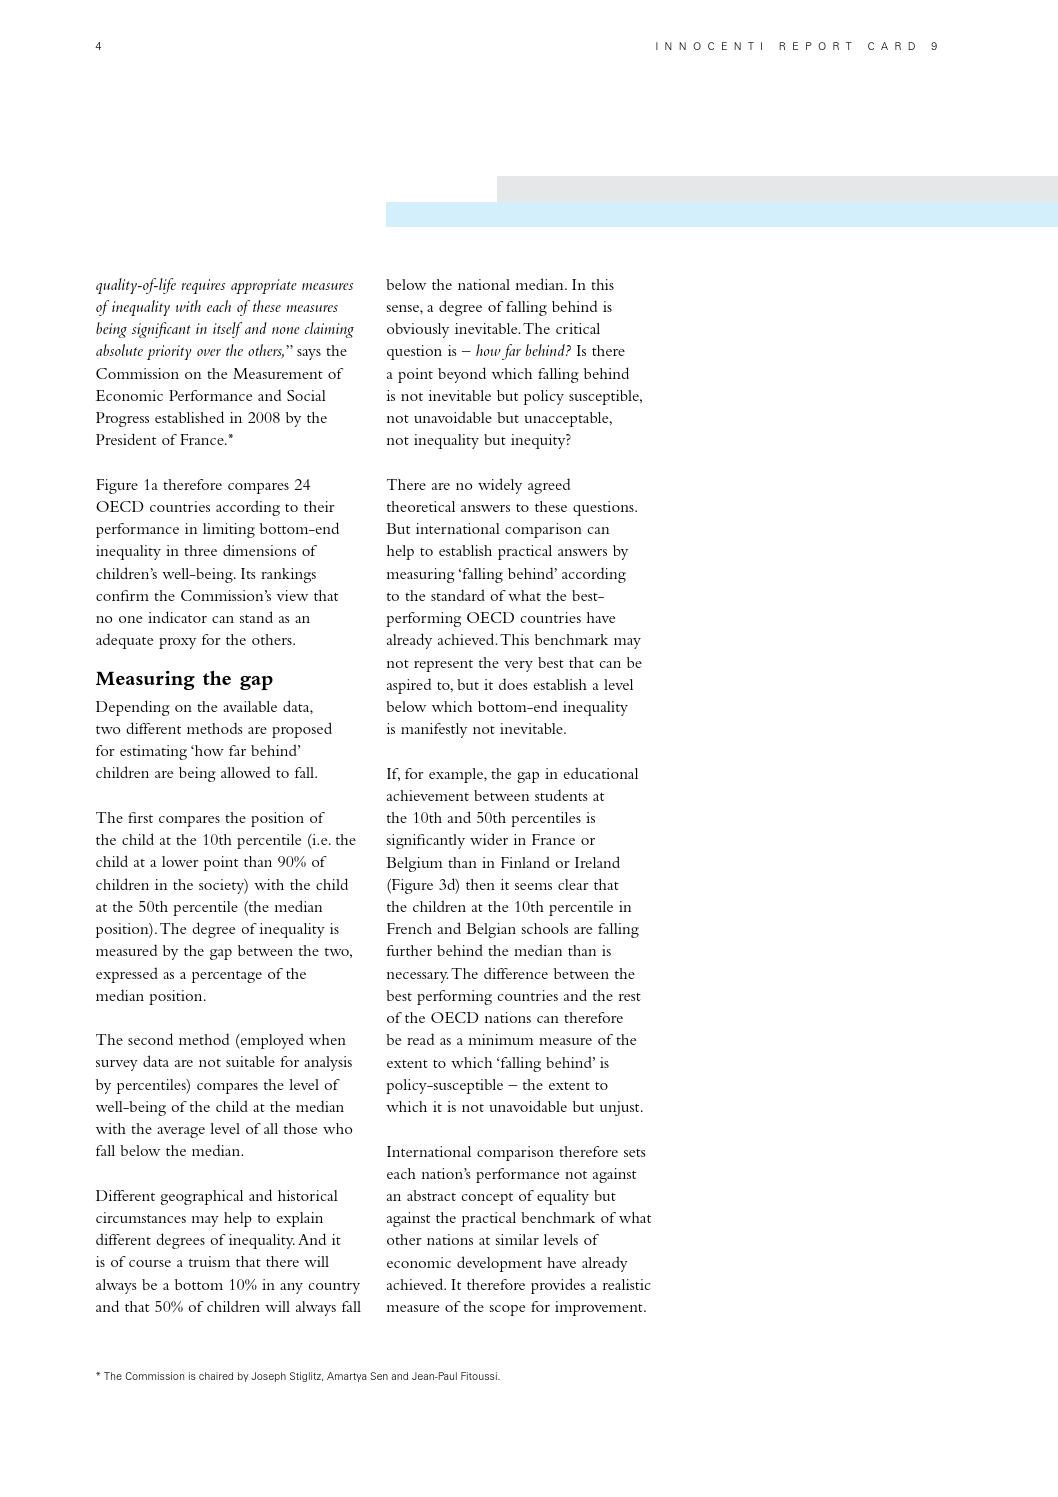 No Inequality Left Behind >> Report Card 9 2011 The Children Left Behind By Unicef Norge Issuu